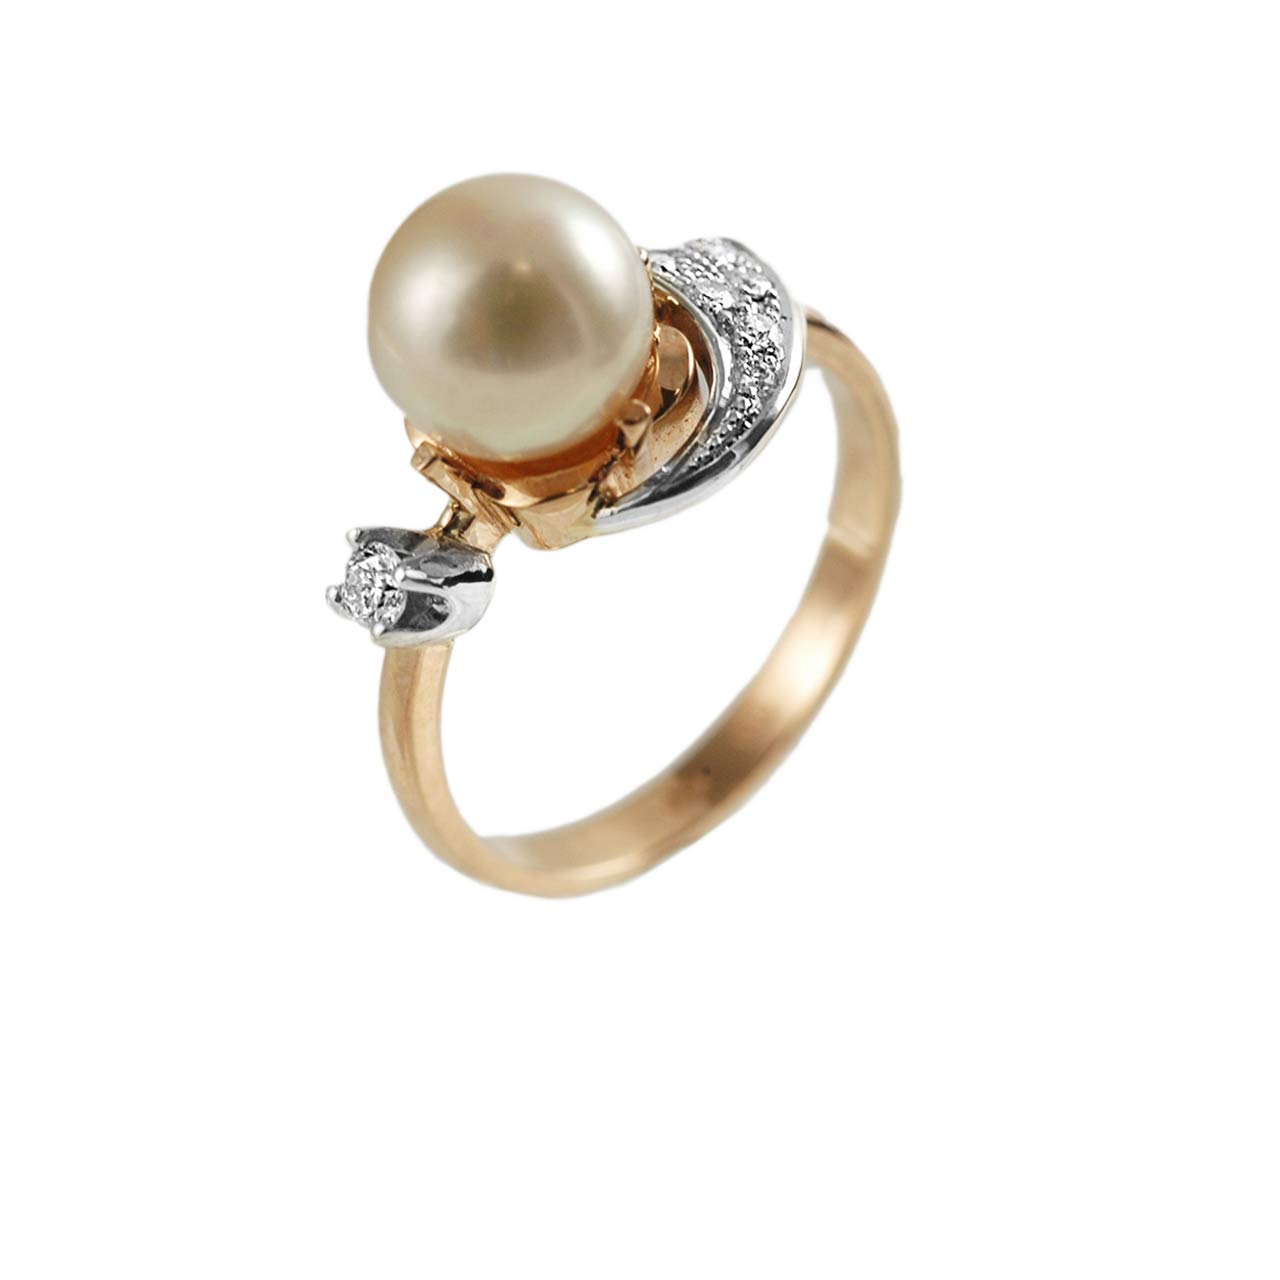 Art Deco pearl and diamond ring 1